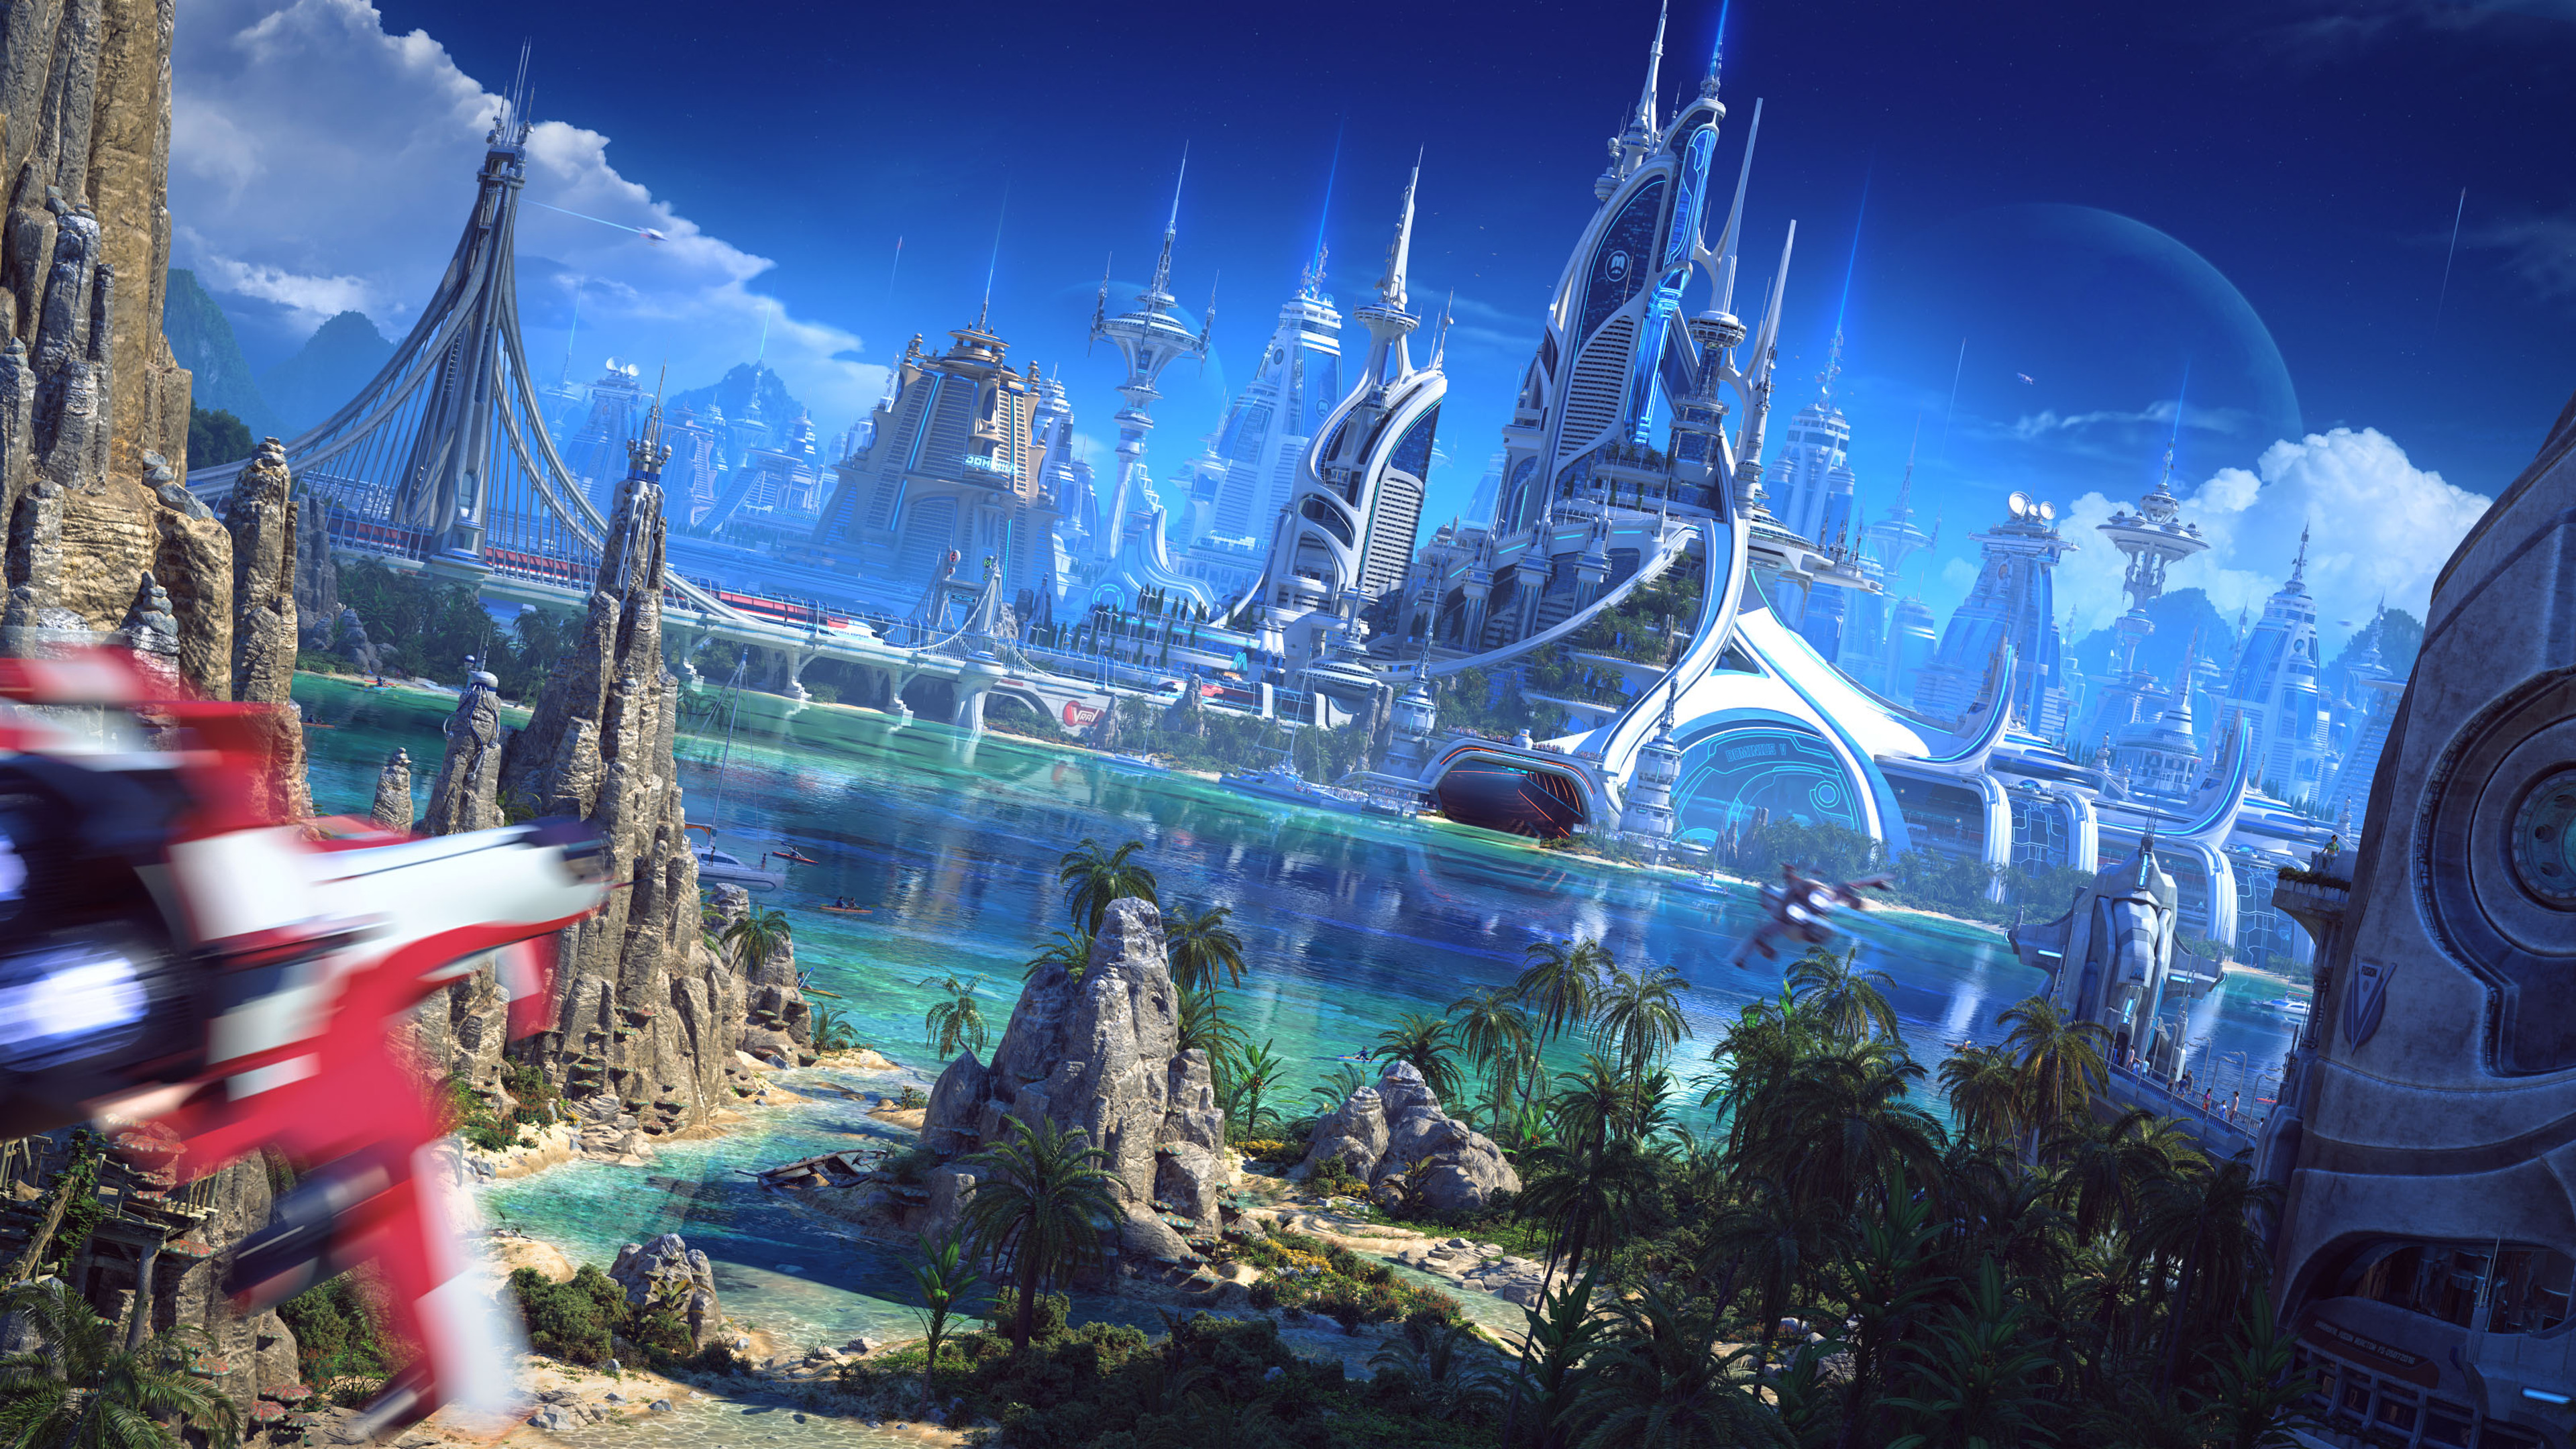 Cute Wallpapers  3840x2160 Futuristic World 4k Hd 4k Wallpapers Images